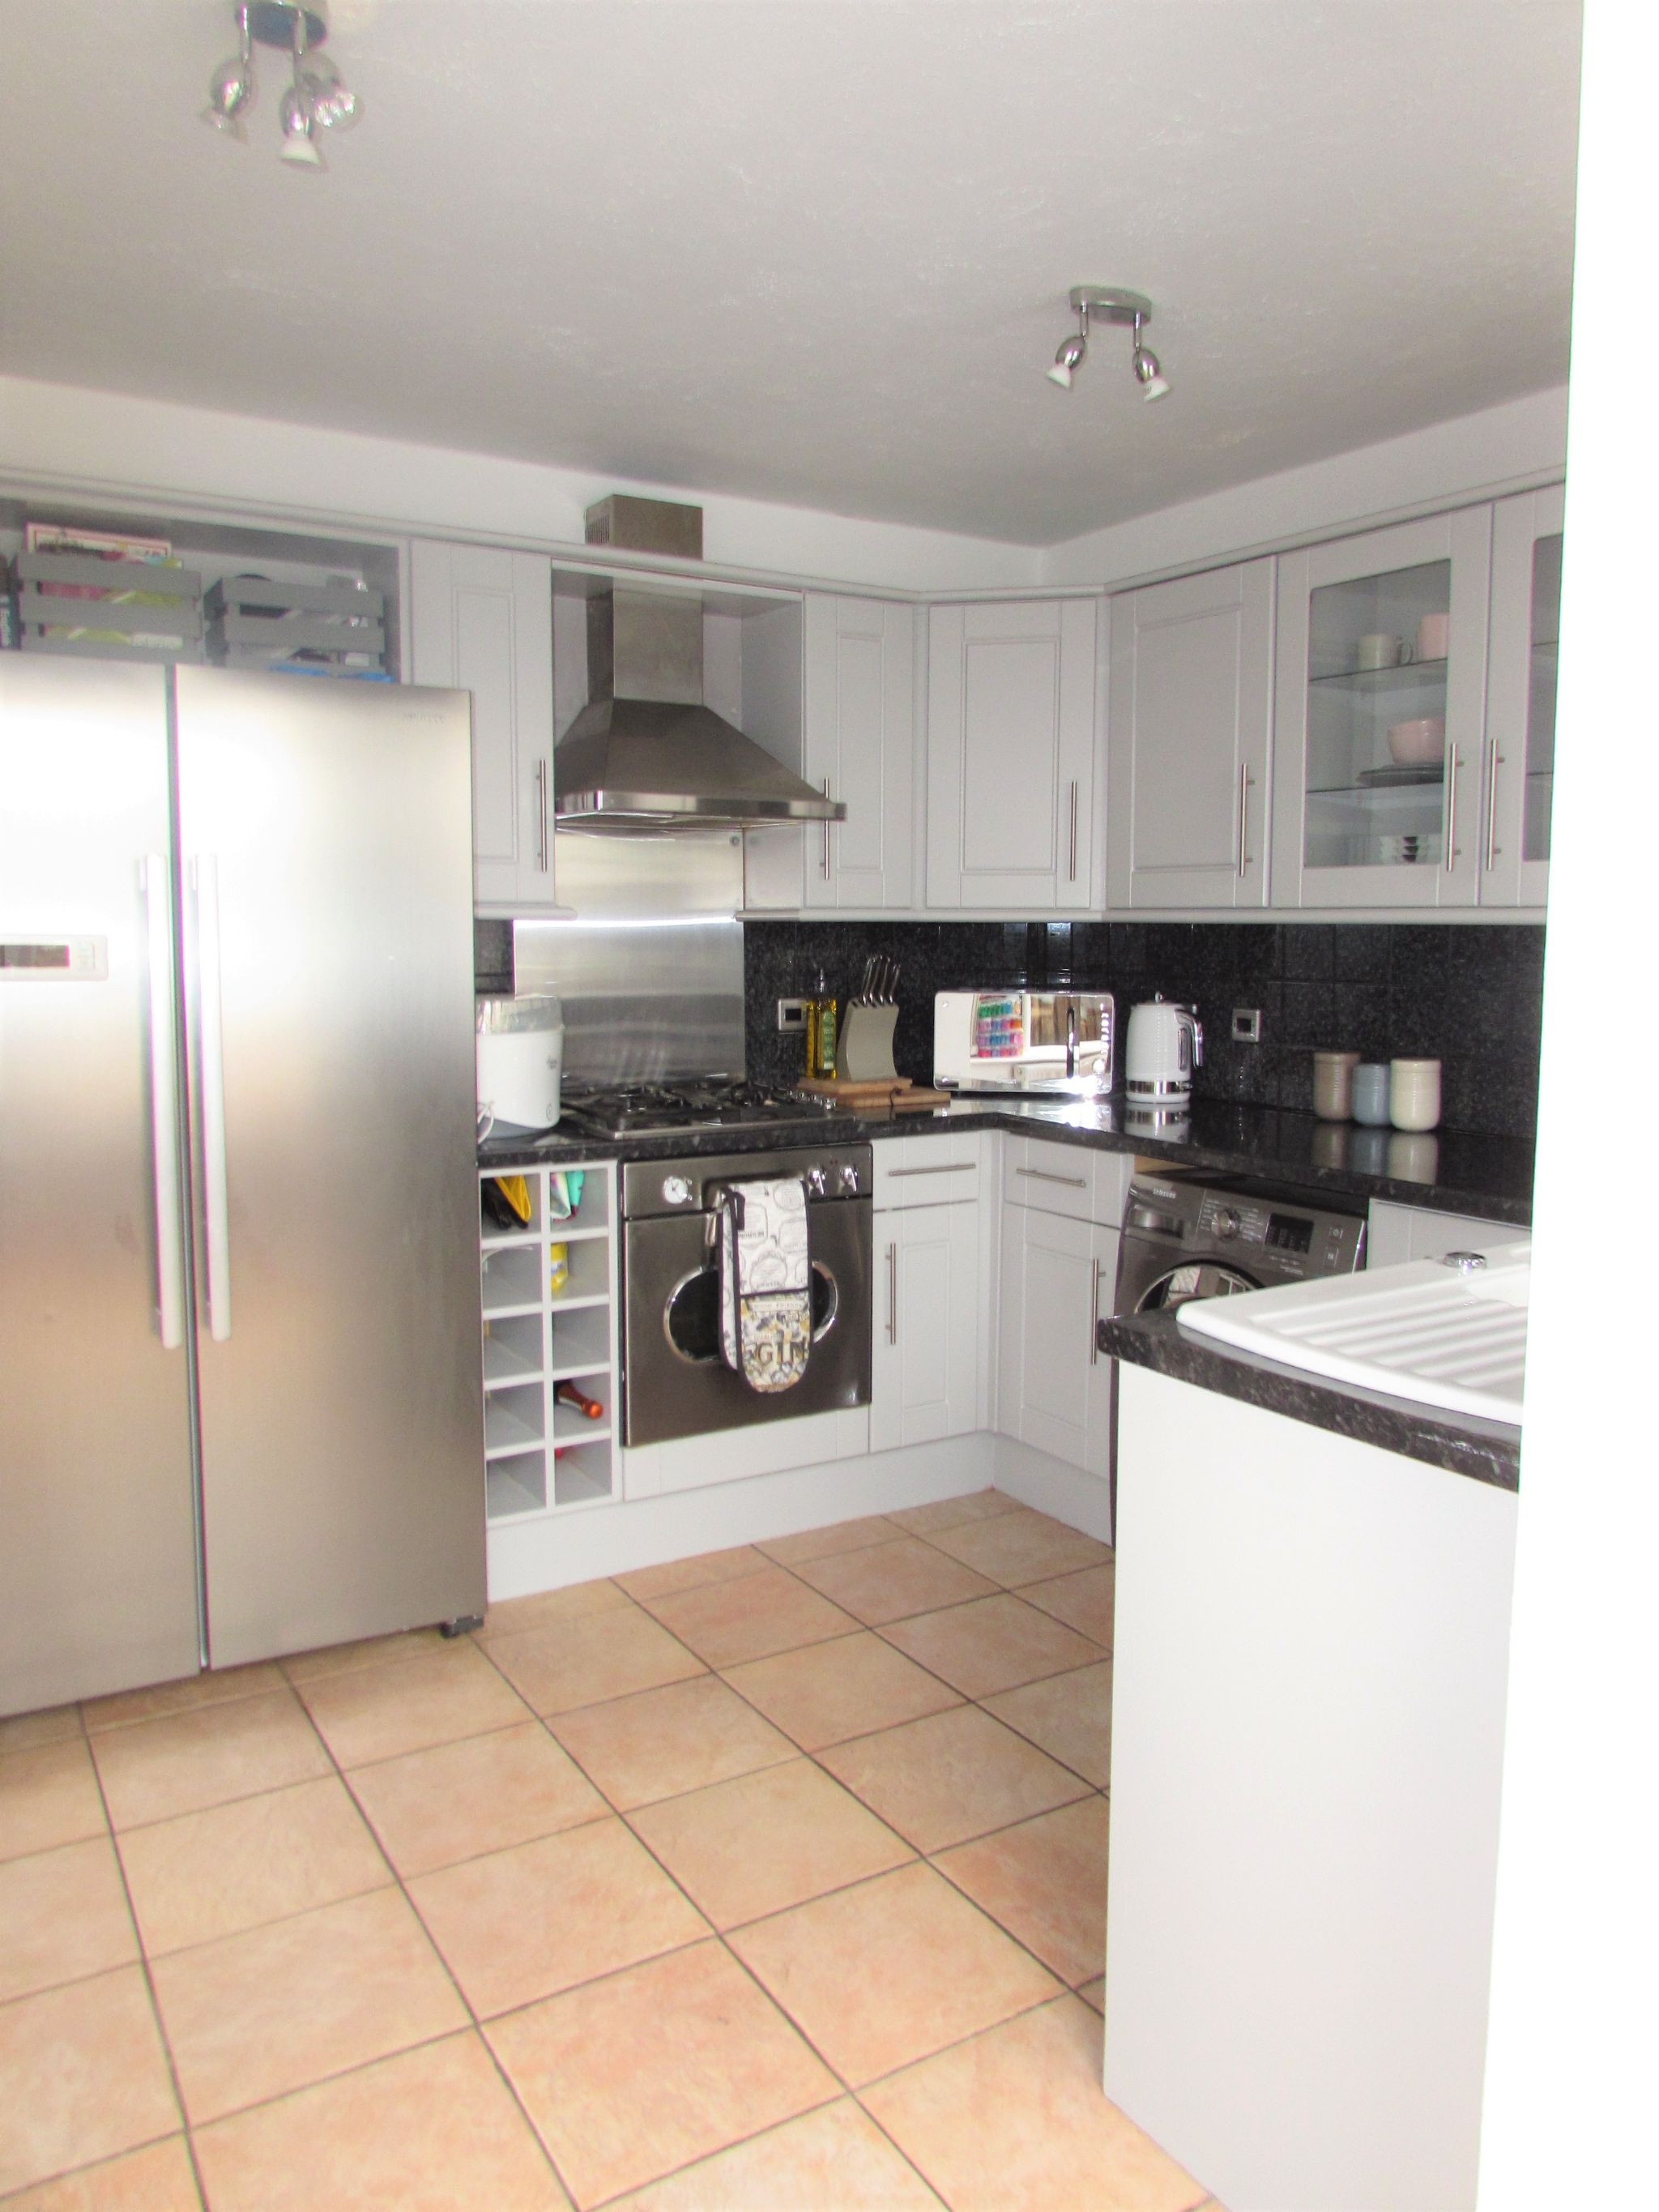 2 Bedroom Semi-detached House For Sale - Kitchen